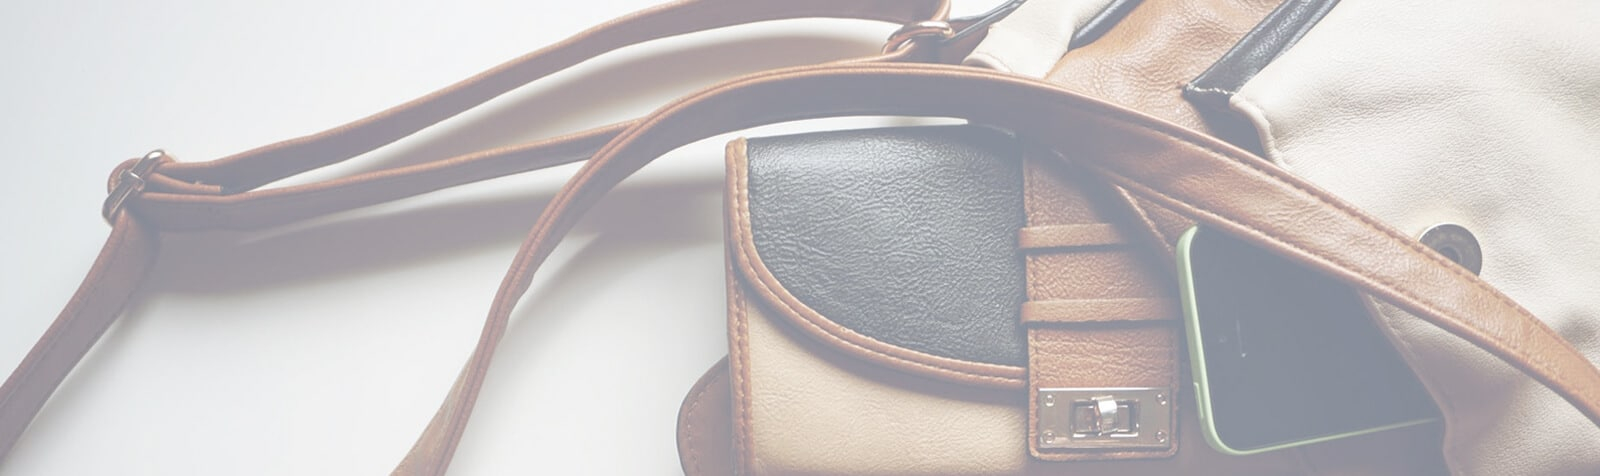 best bags manufacturers